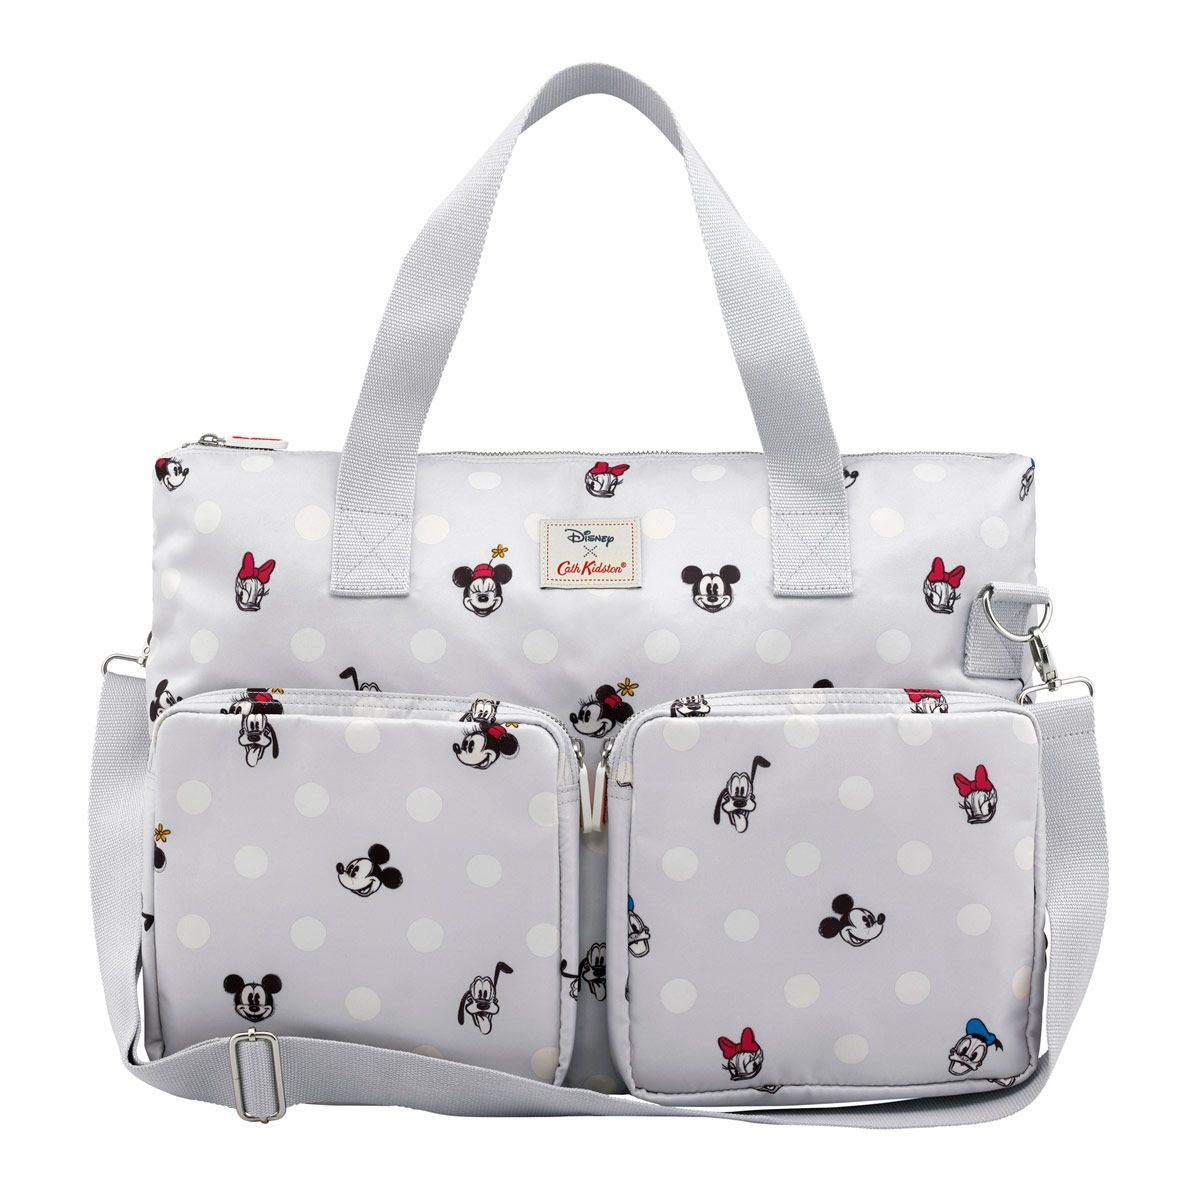 Mickey And Friends Button Spot Everyday Changing Bag Disney Travel Babygo Inc Travelling Pouch Organiser